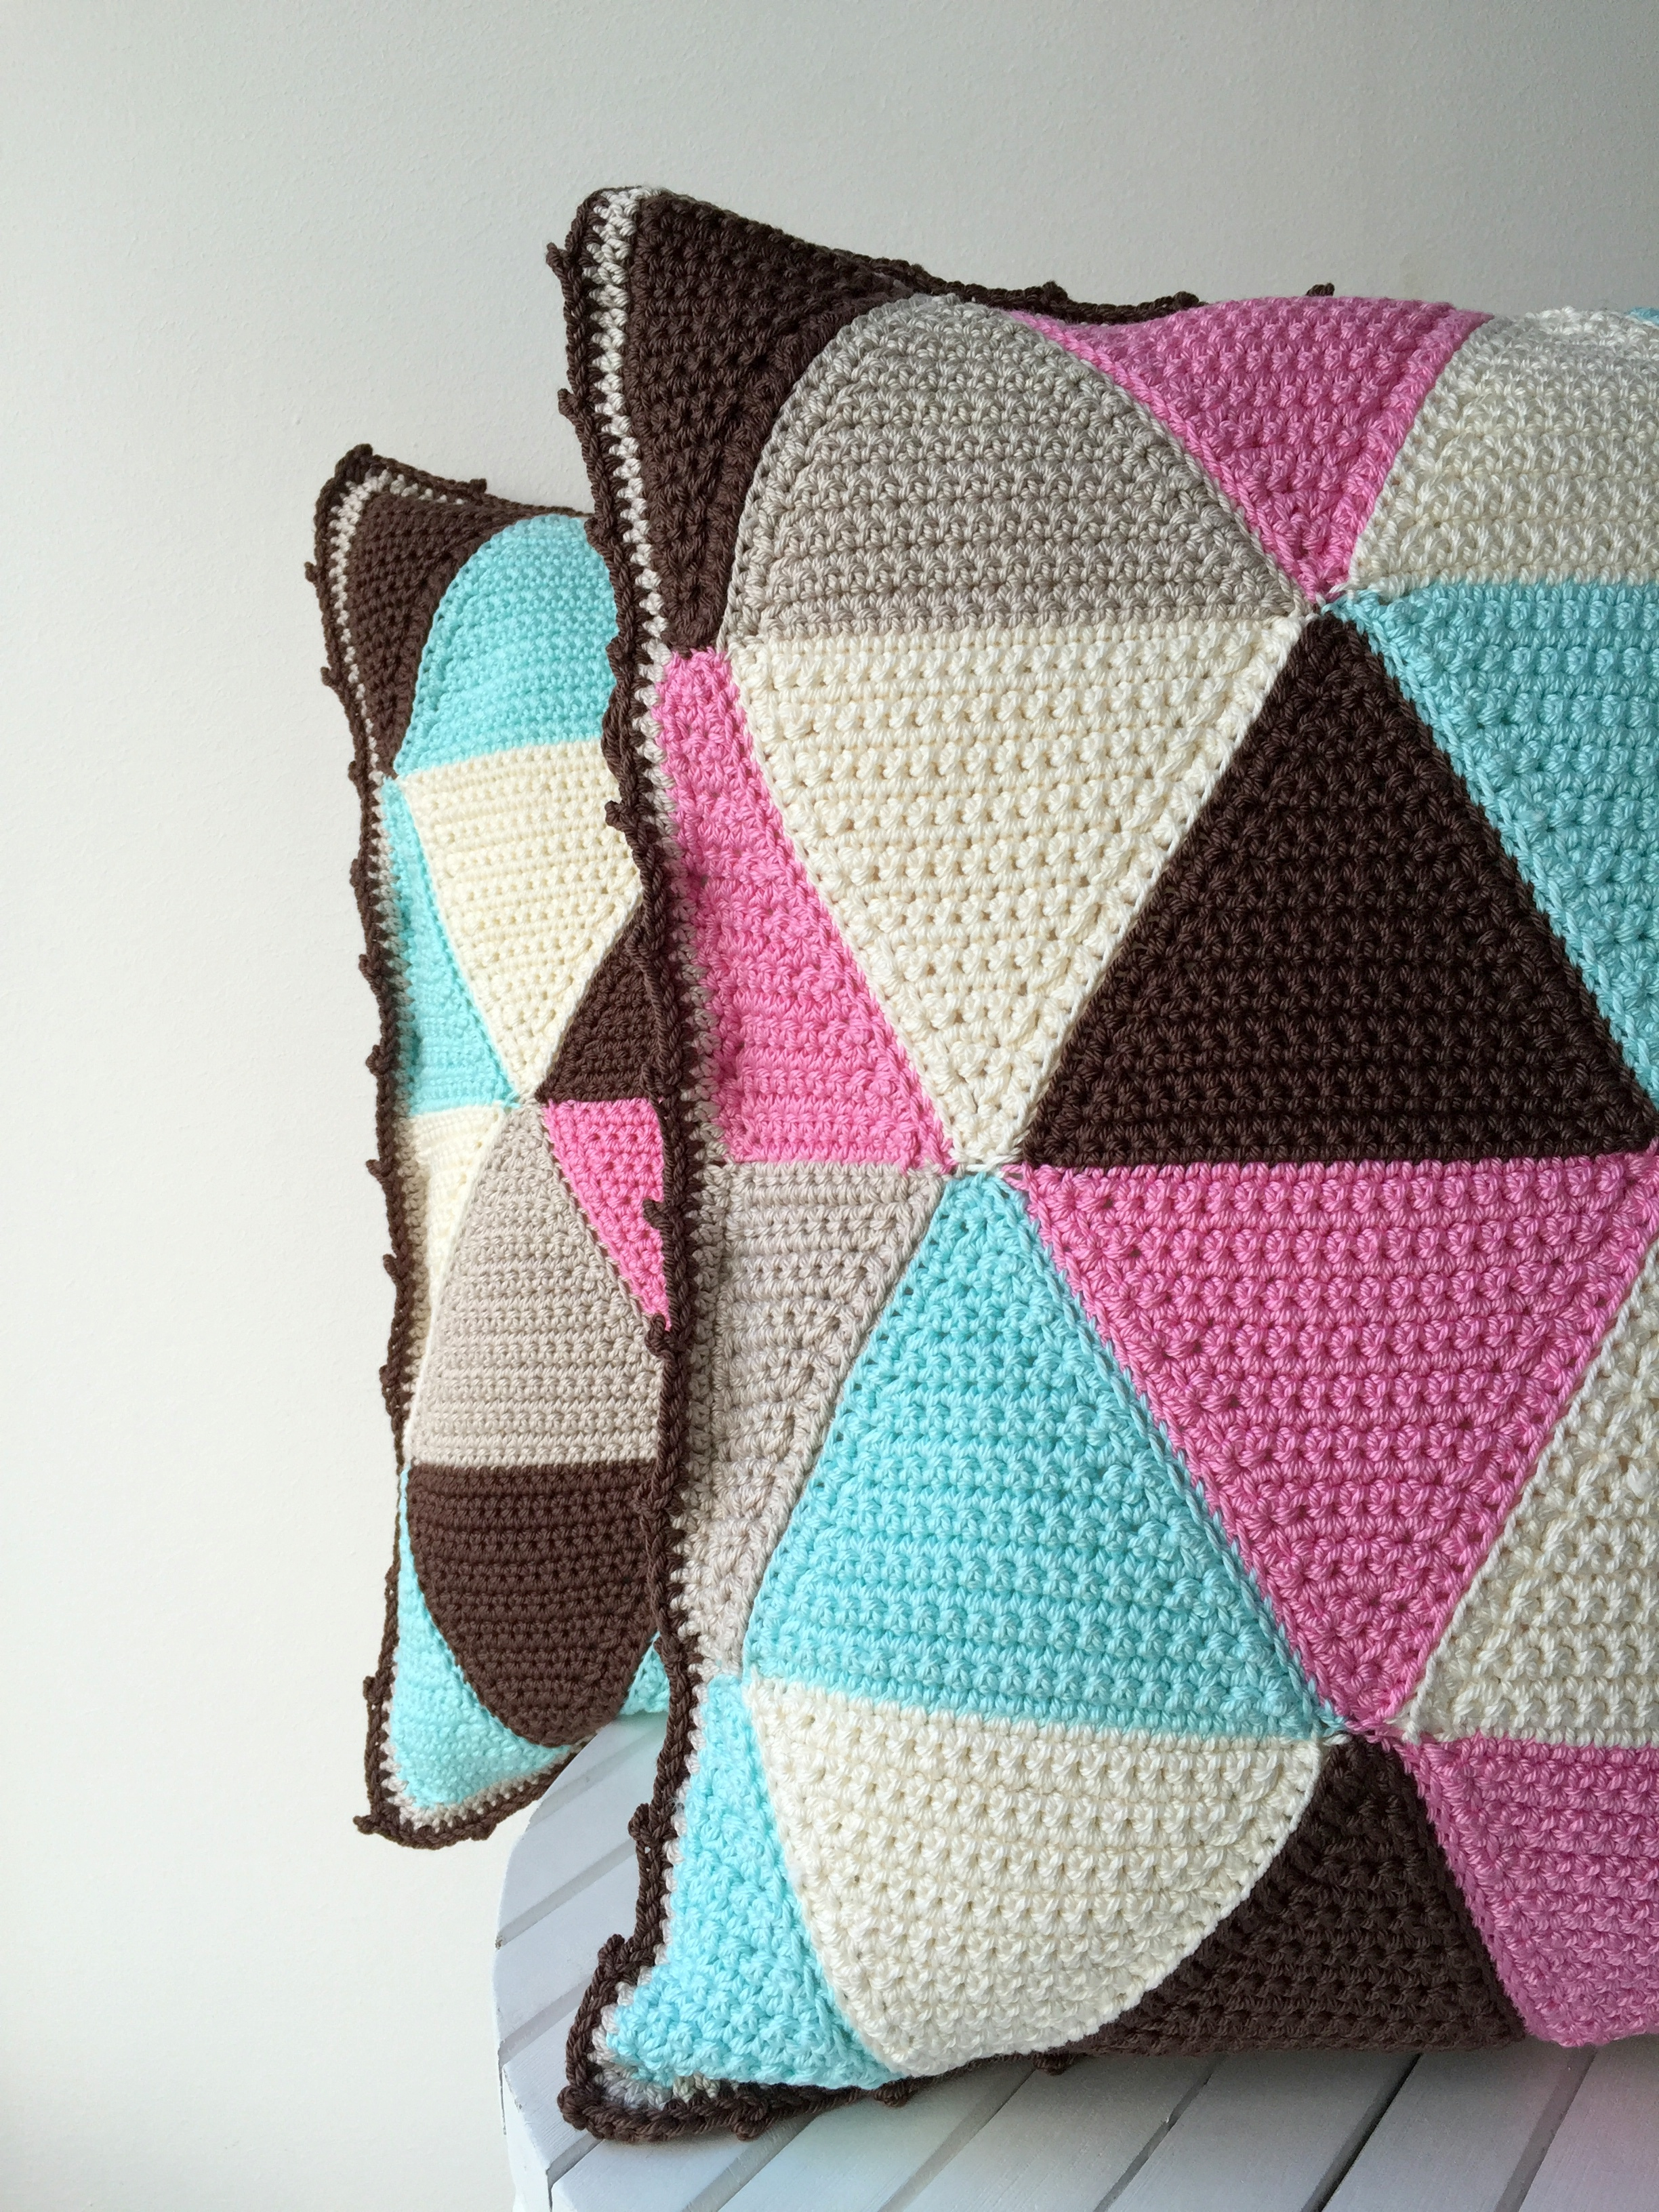 maRRose - CCC - The Gelato Gemini Triangle Cushions-33